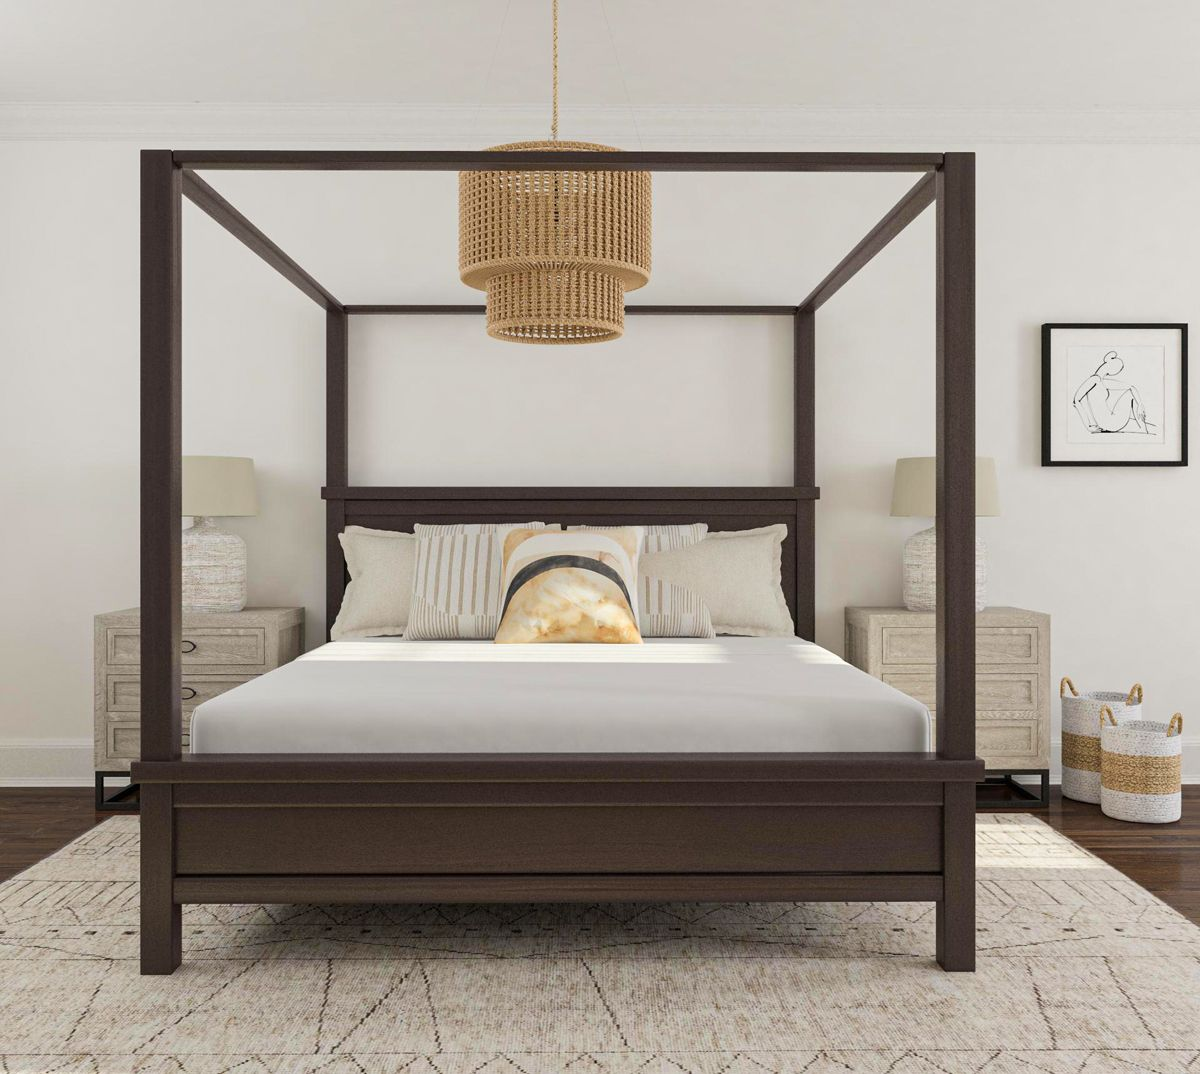 Bed Frame Styles The Pros and Cons of the MostPopular